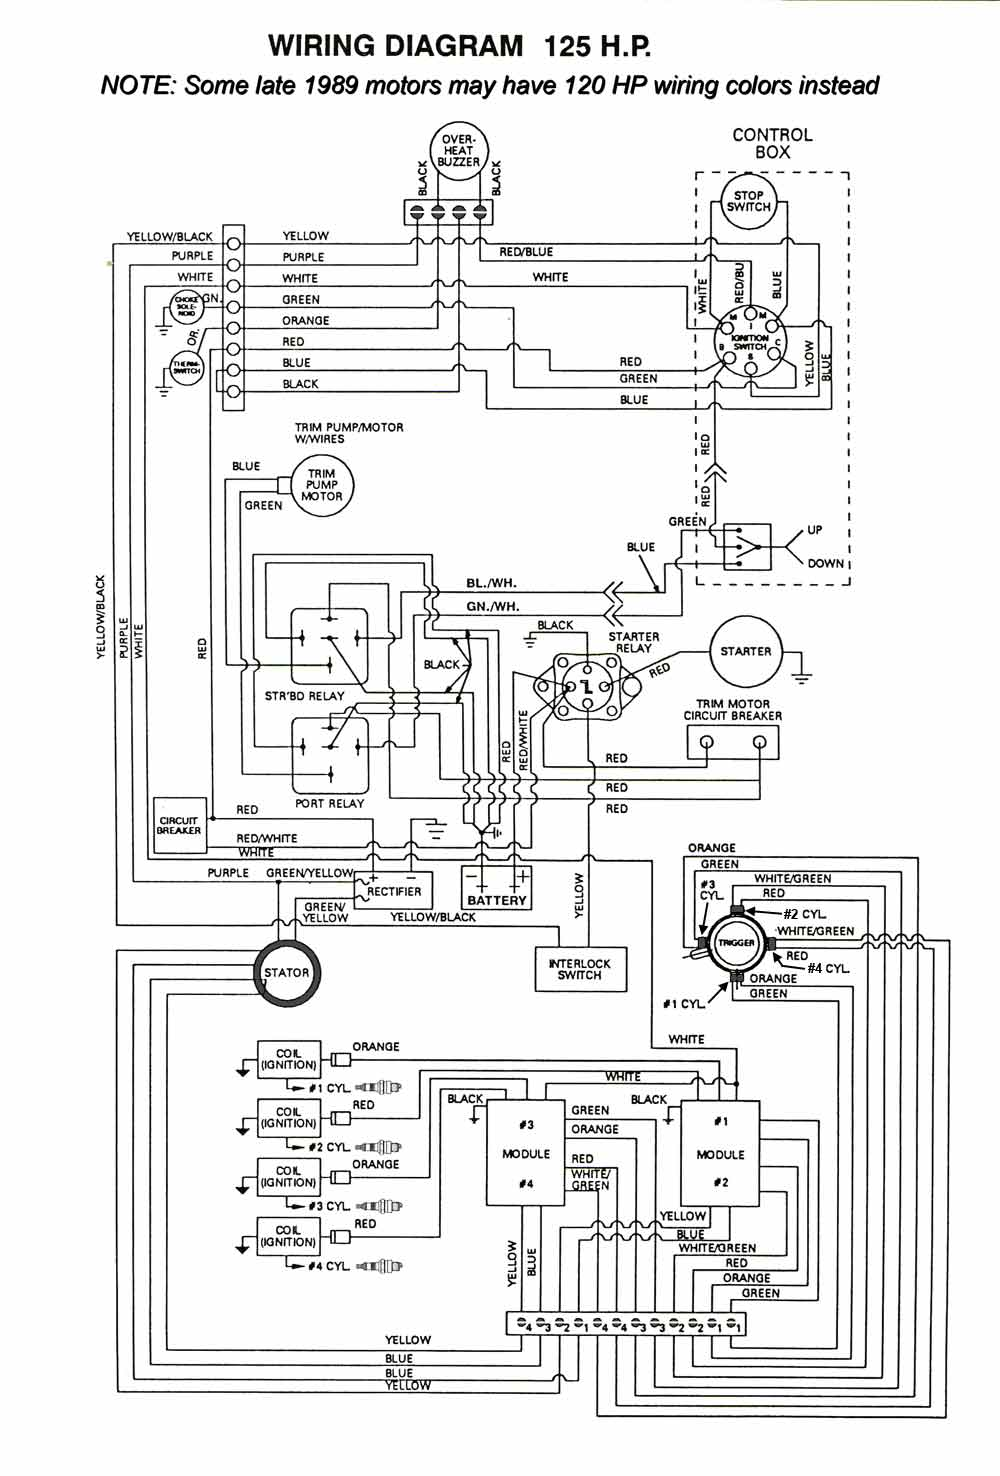 f56 85 force outboard wiring diagram | wiring library  wiring library